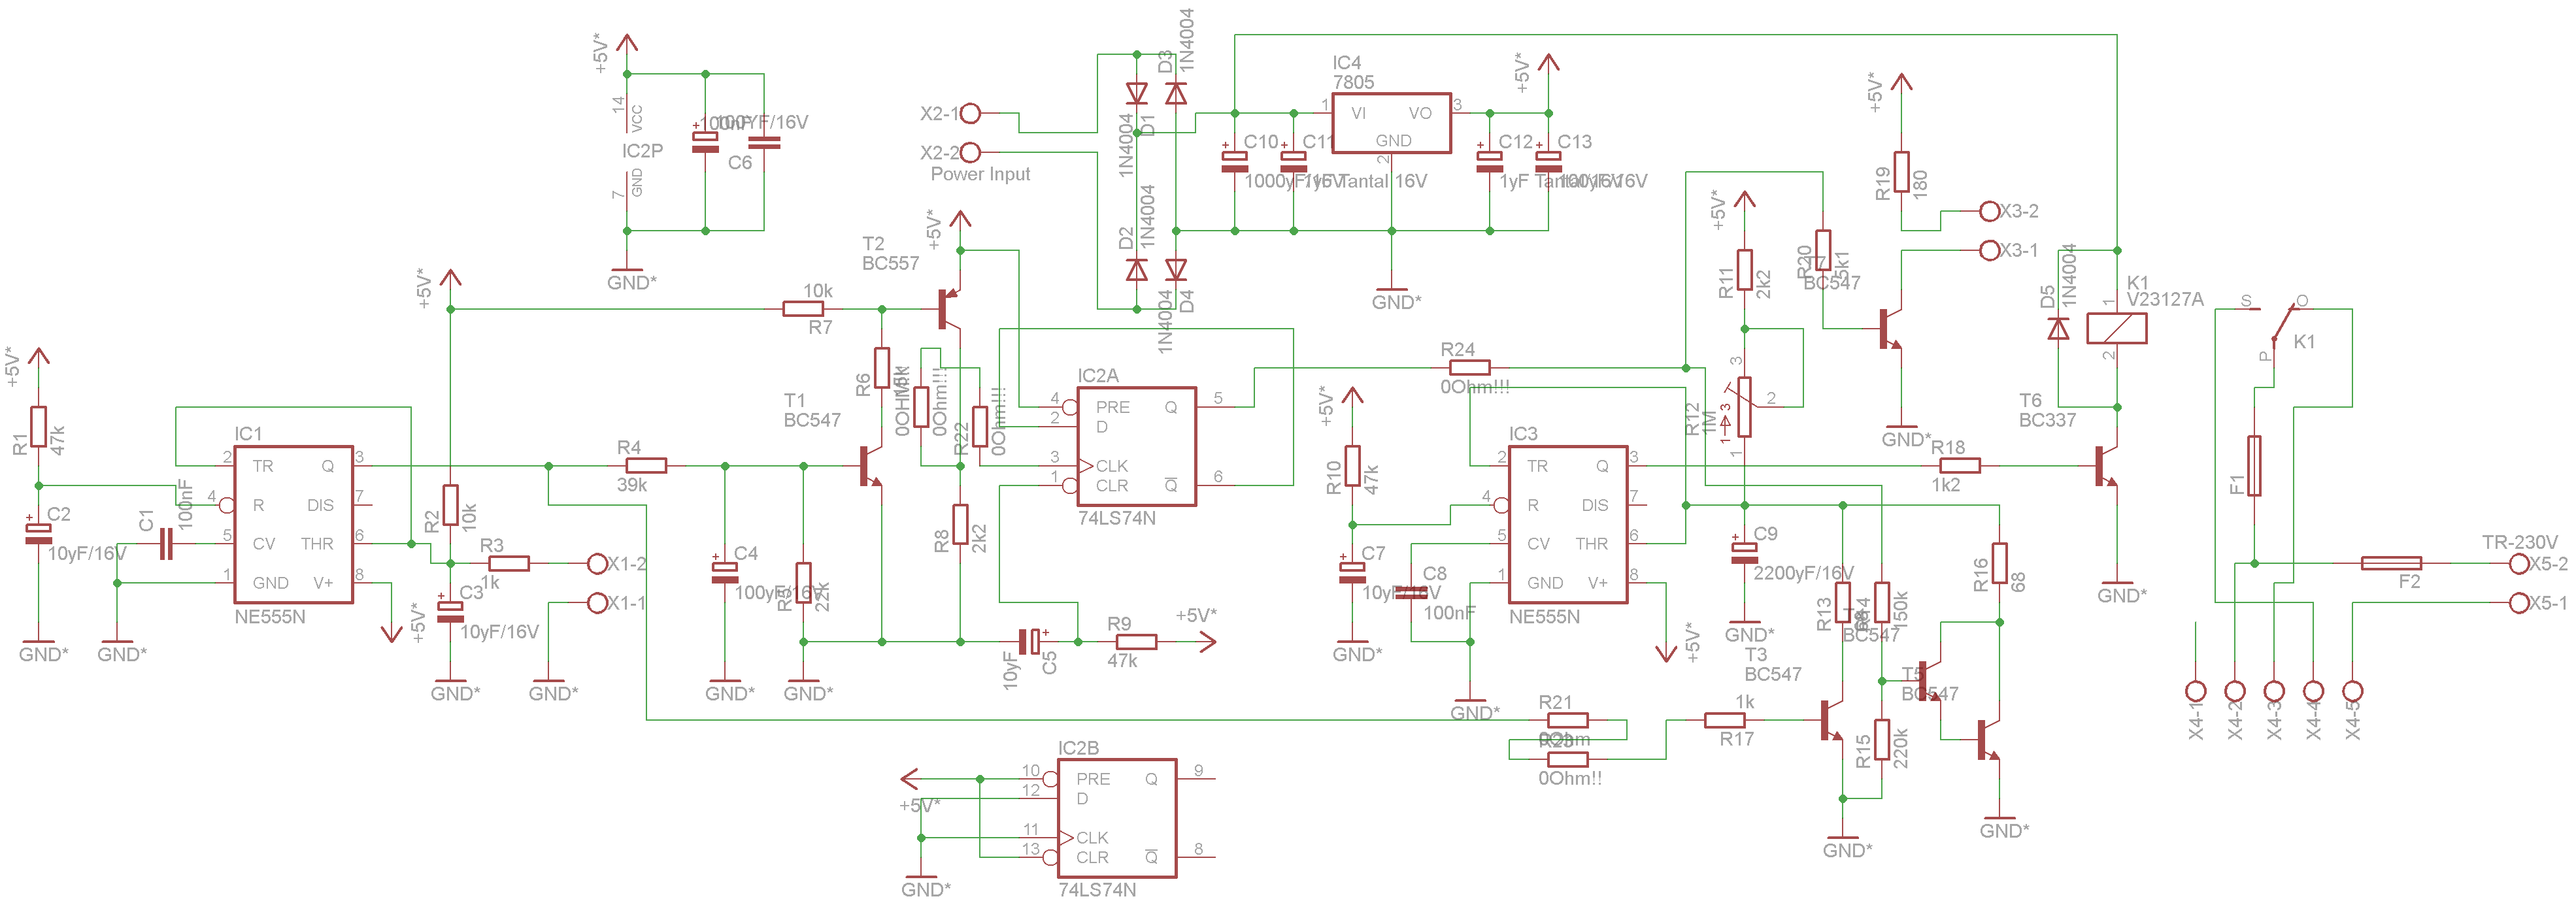 Index Debounce Circuit Schematic The Of Project Is Shown Above Because Control Needs Much Less Power Than Connected Light I Decided To Go For Two Different